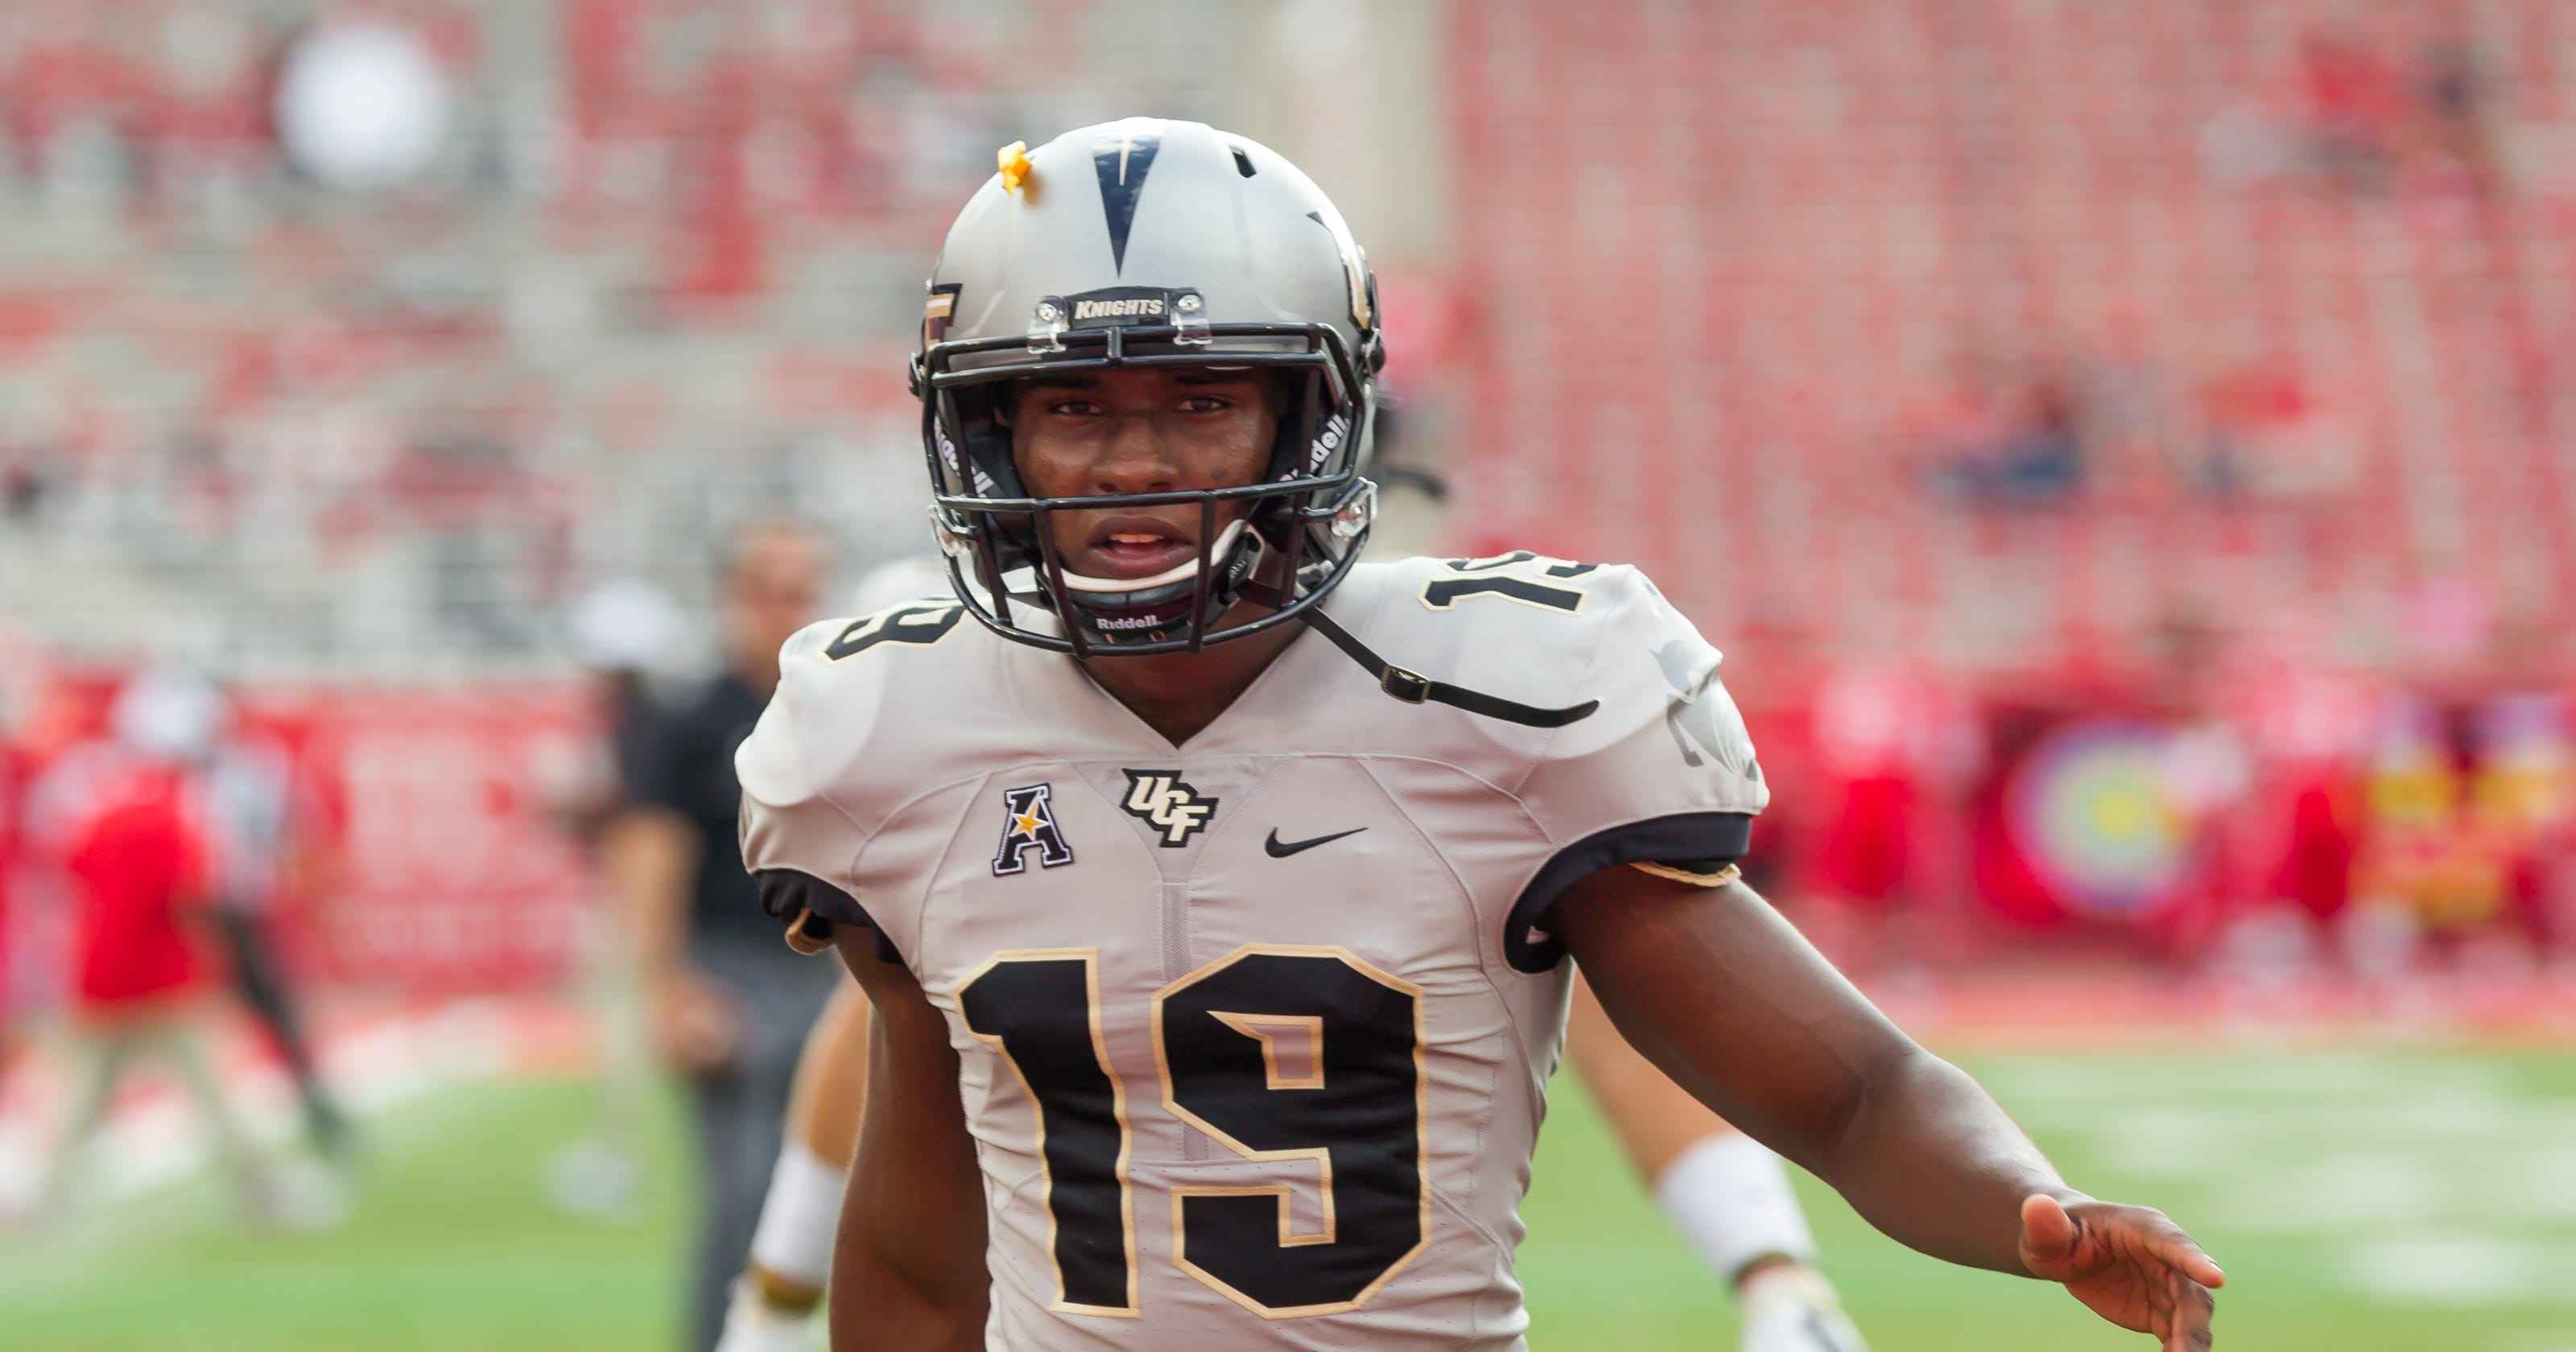 255ea12e In case of ex-UCF kicker, YouTube videos, NCAA once again a punchline